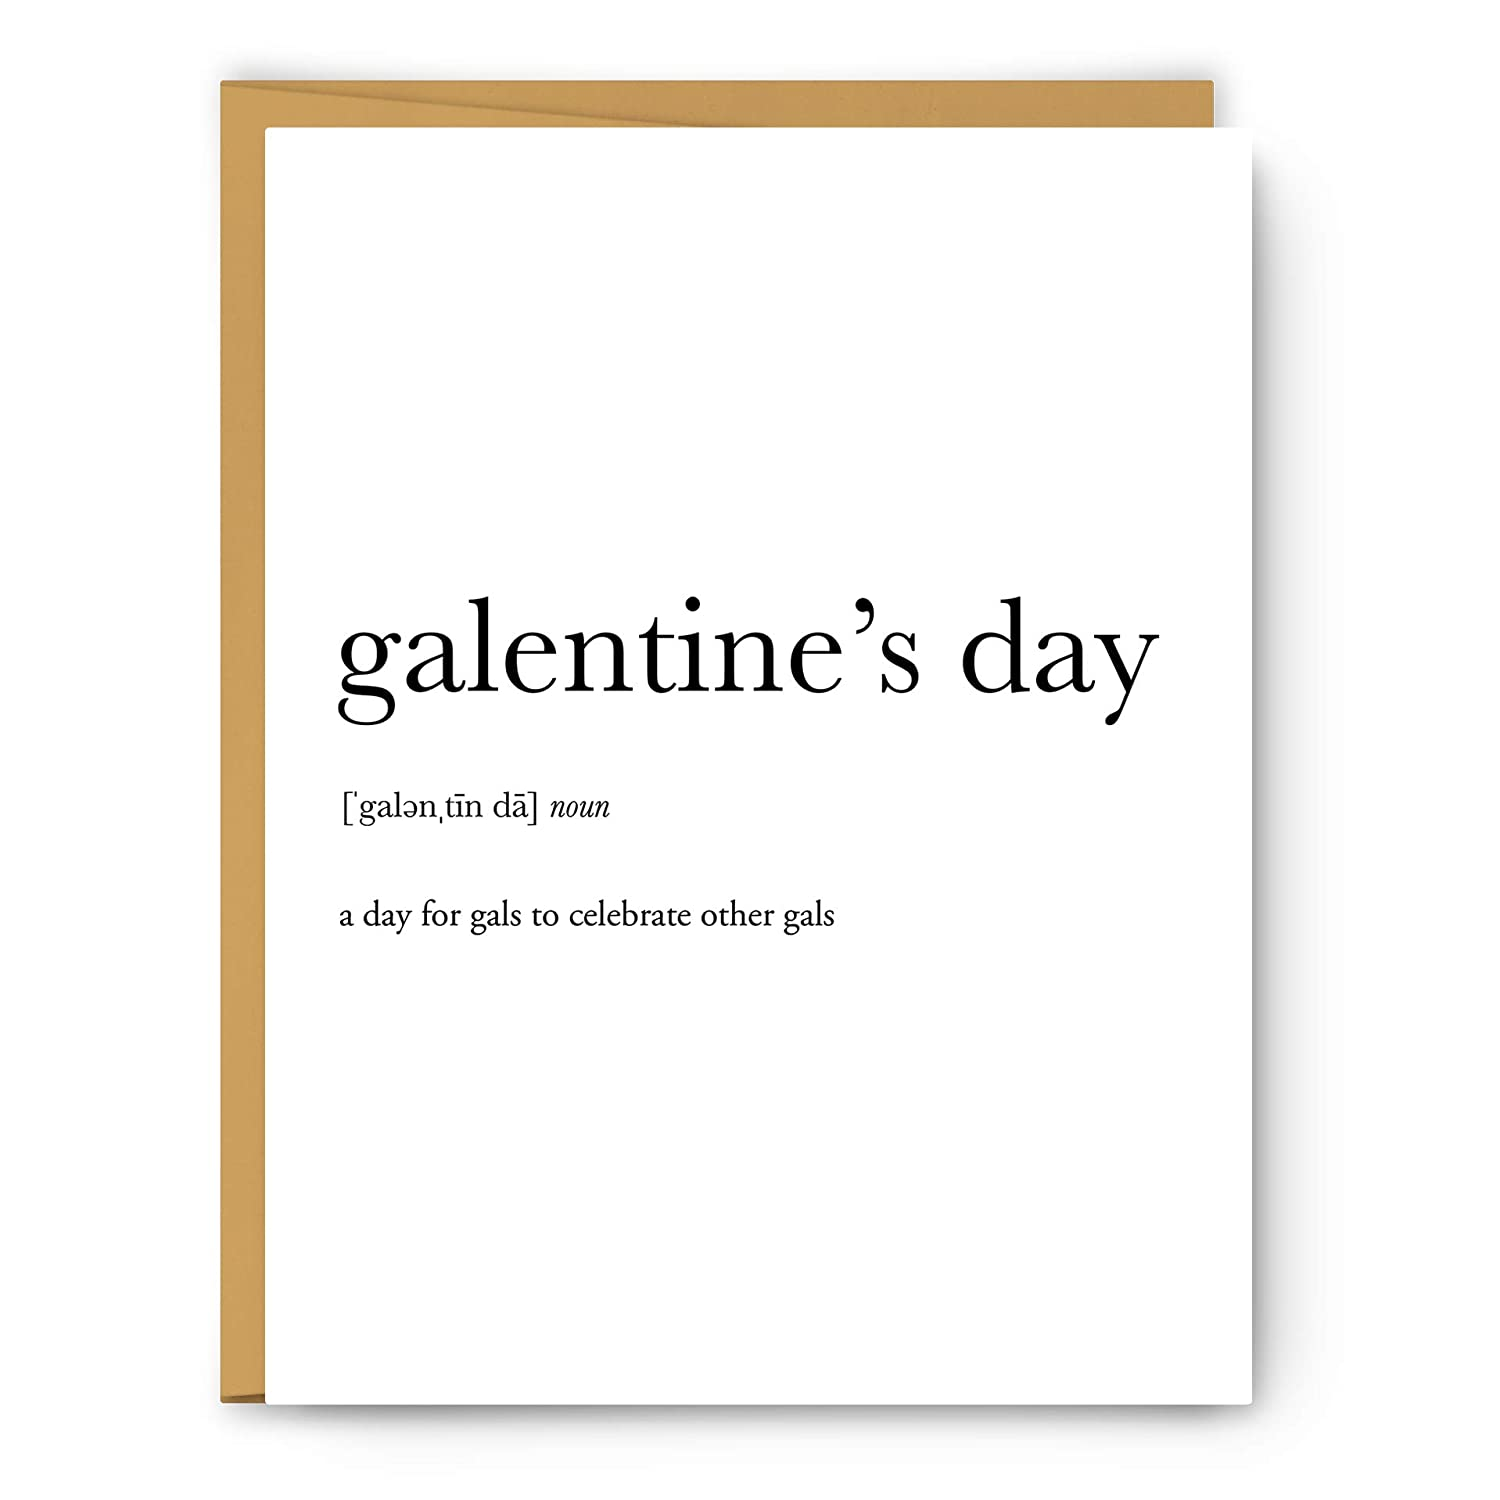 Amazon Com Galentine S Day Definition Unframed Art Print Poster Or Greeting Card Handmade